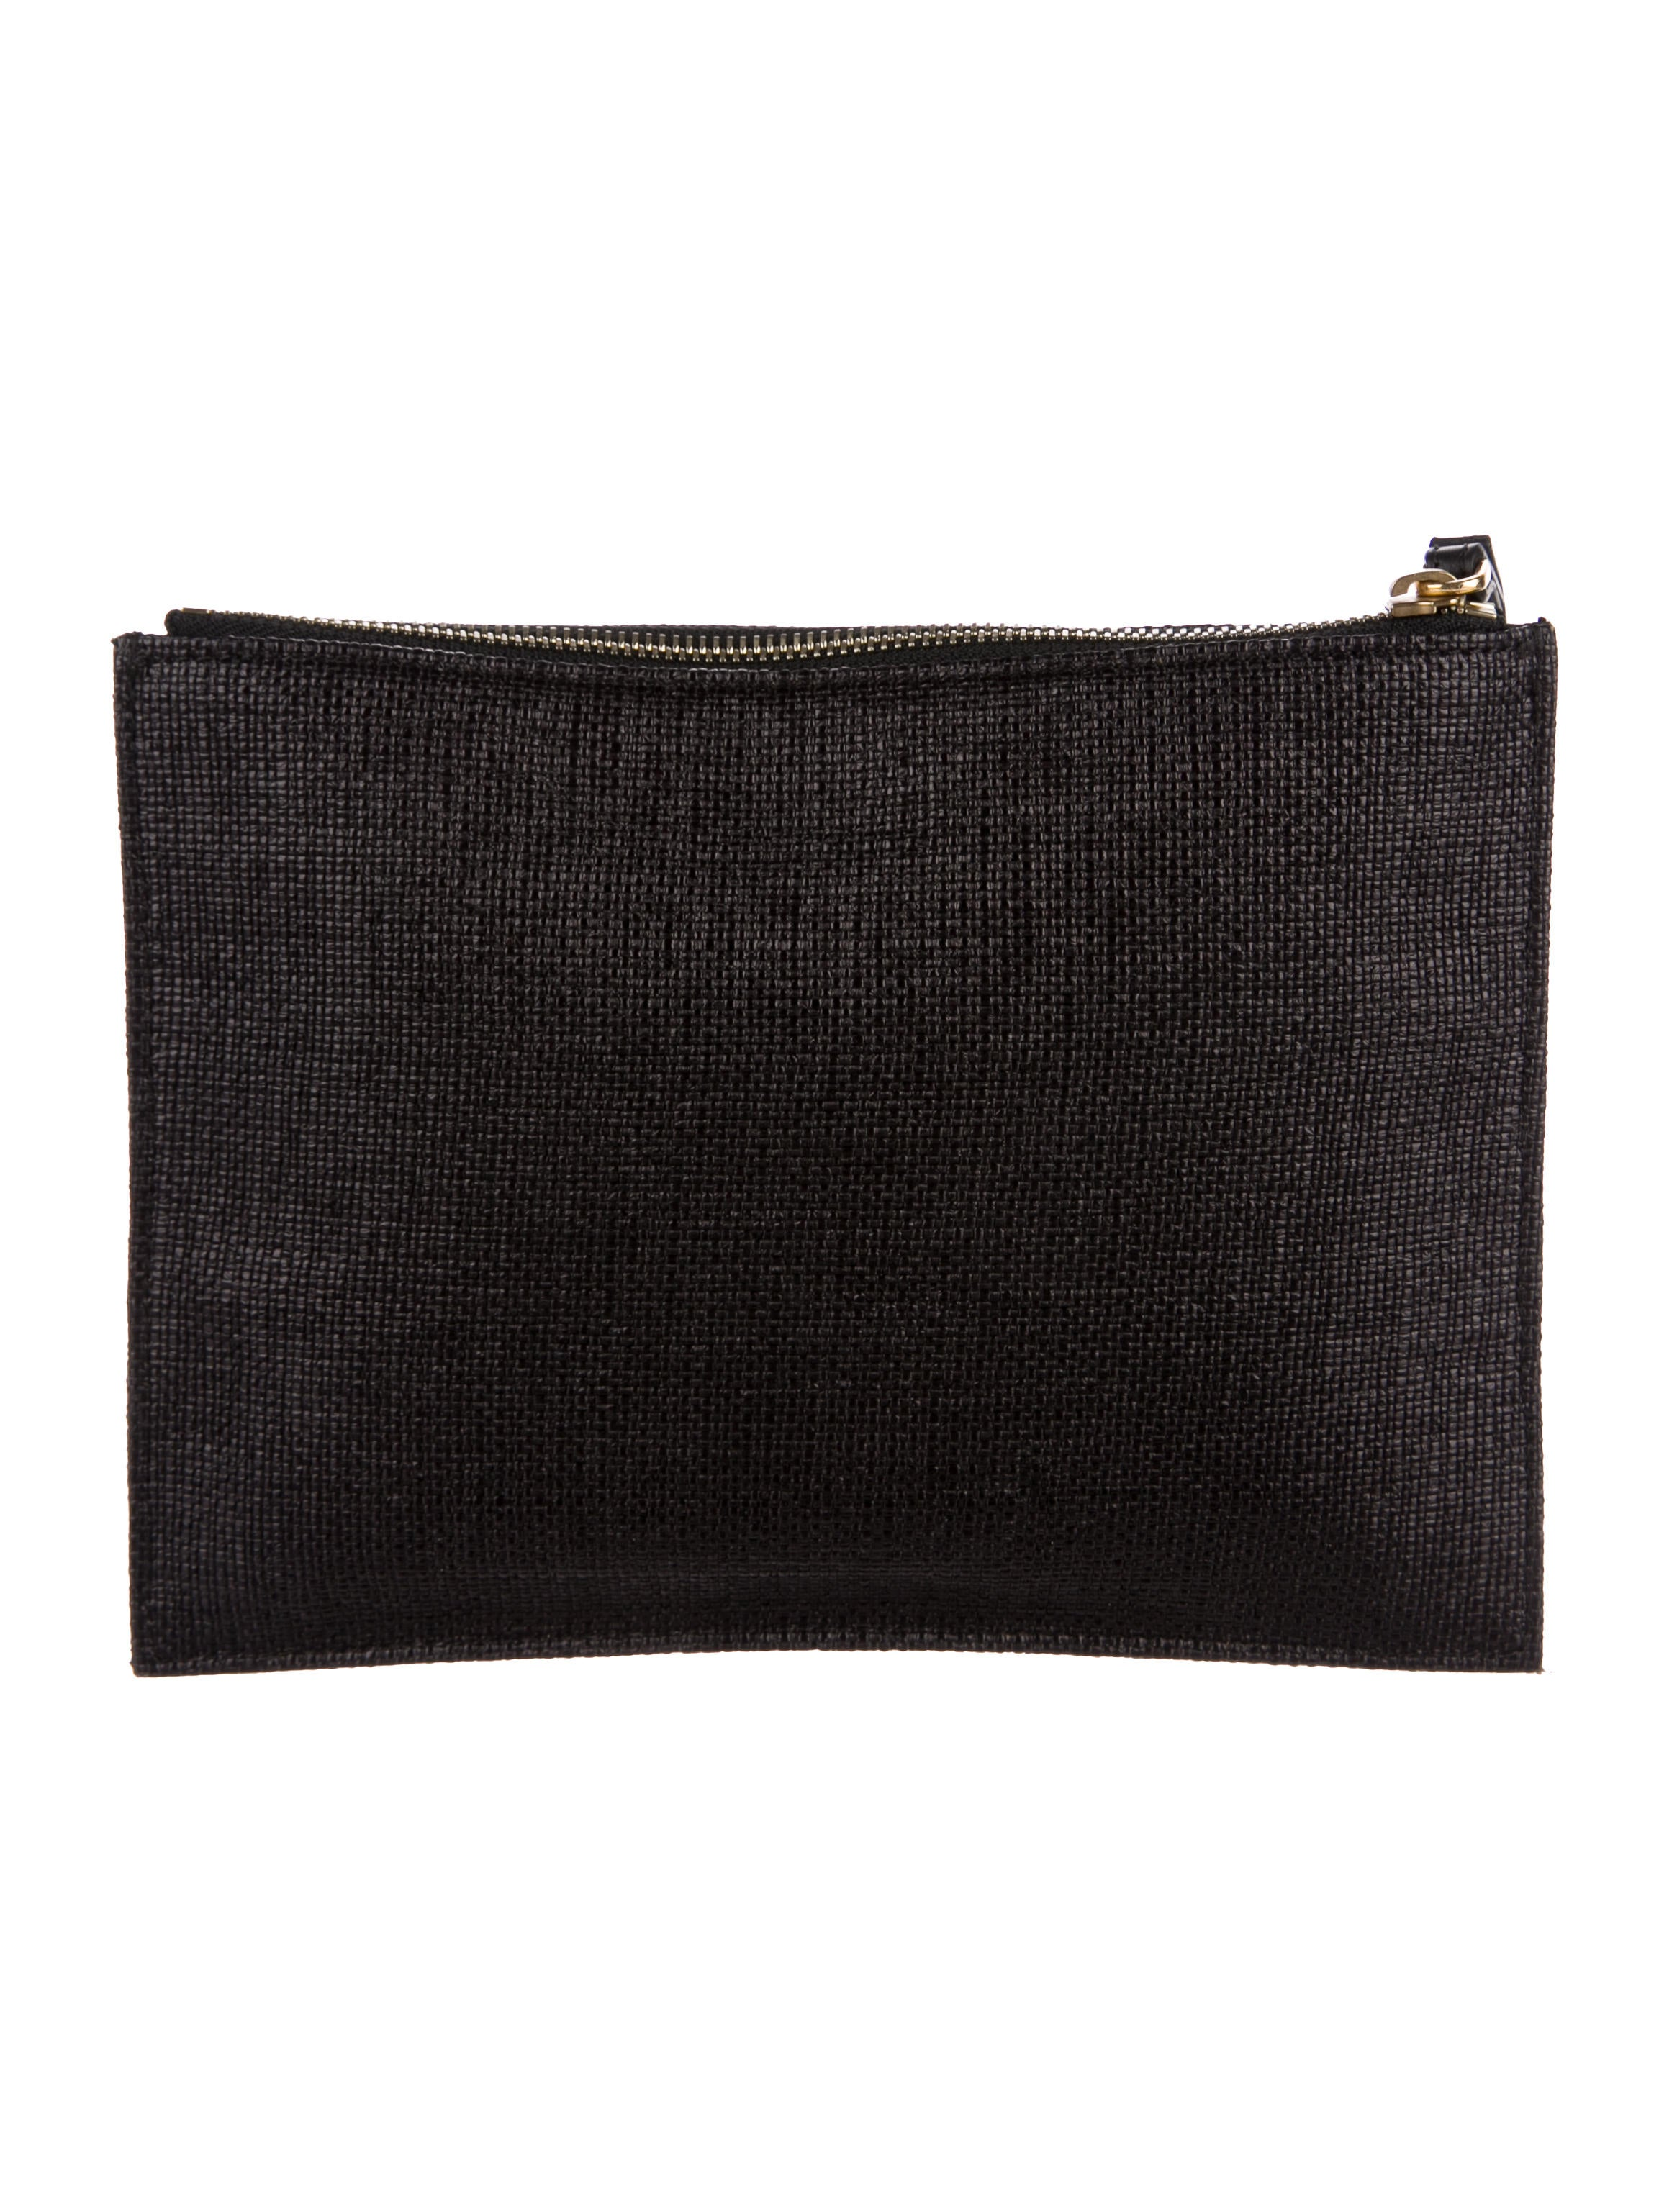 zipped pouch - Black Marni GC397OI